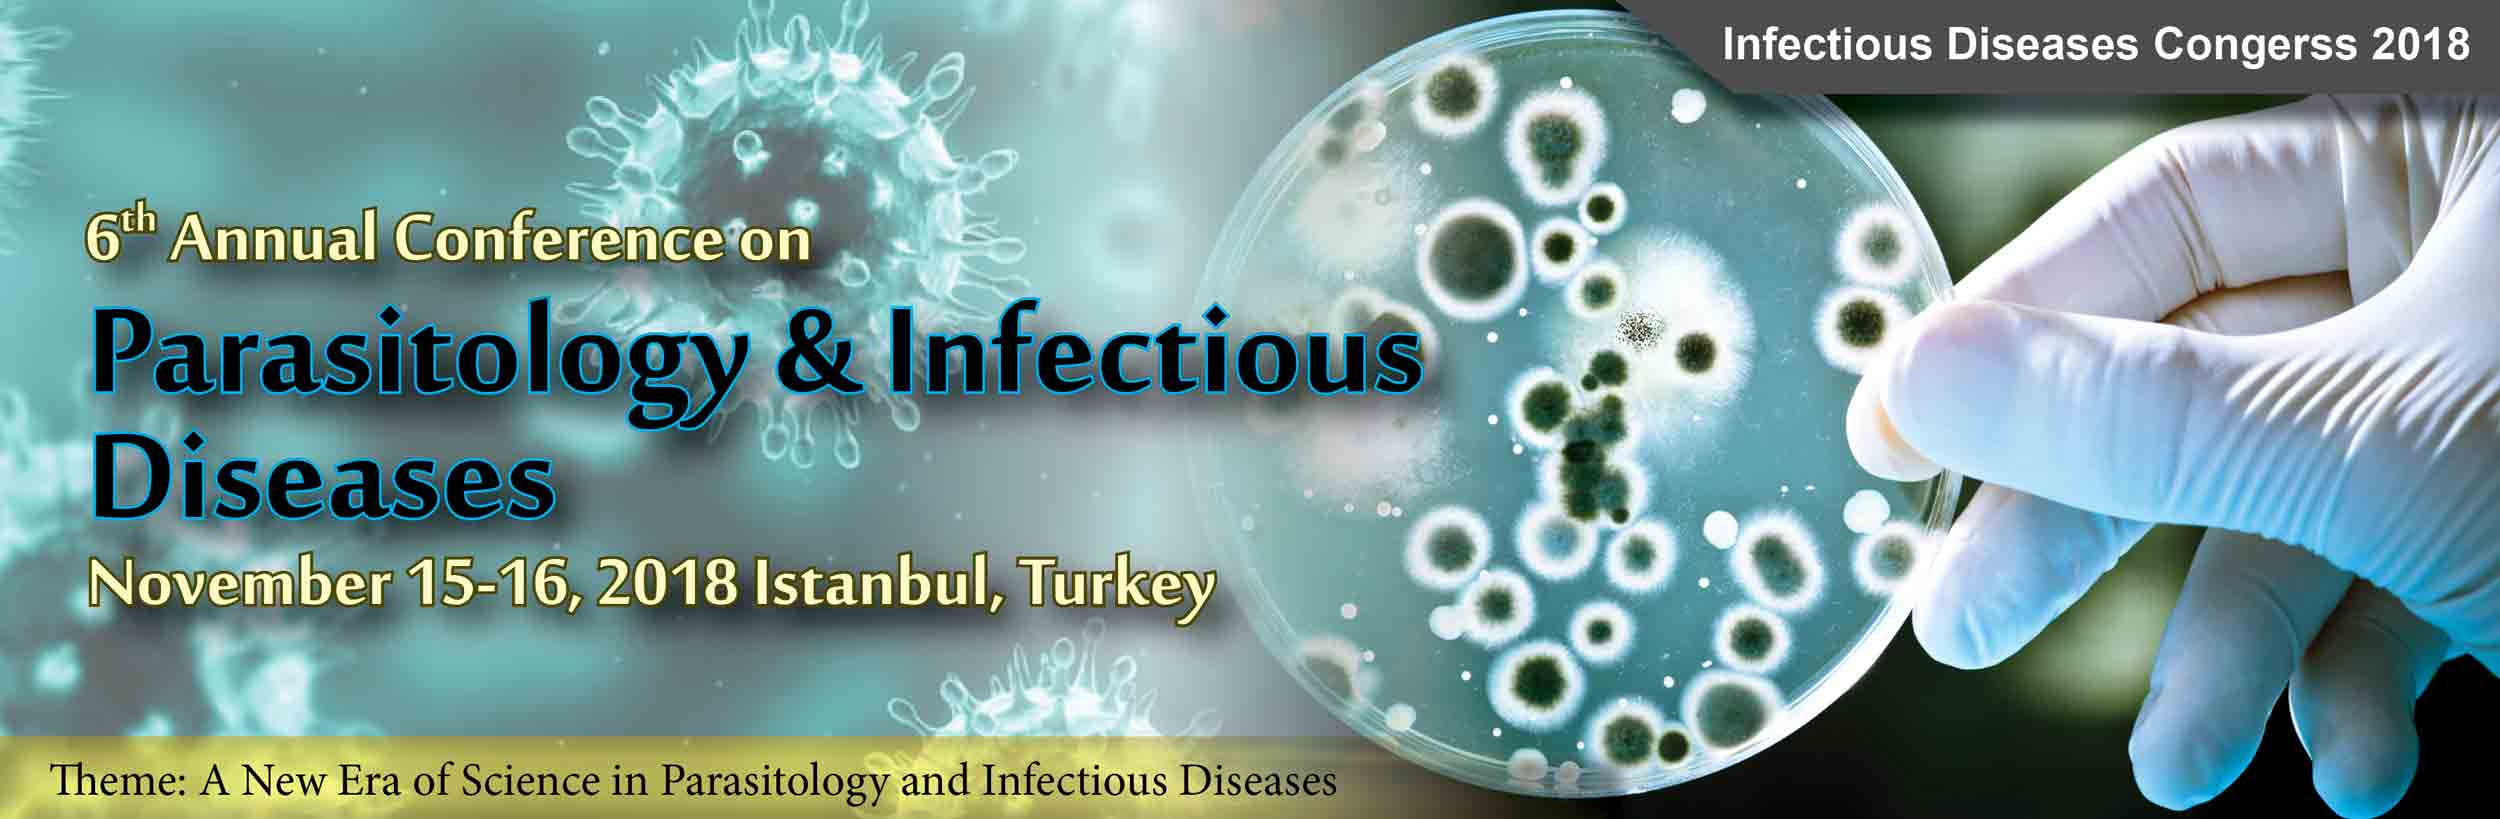 - Infectious Diseases Congress 2018